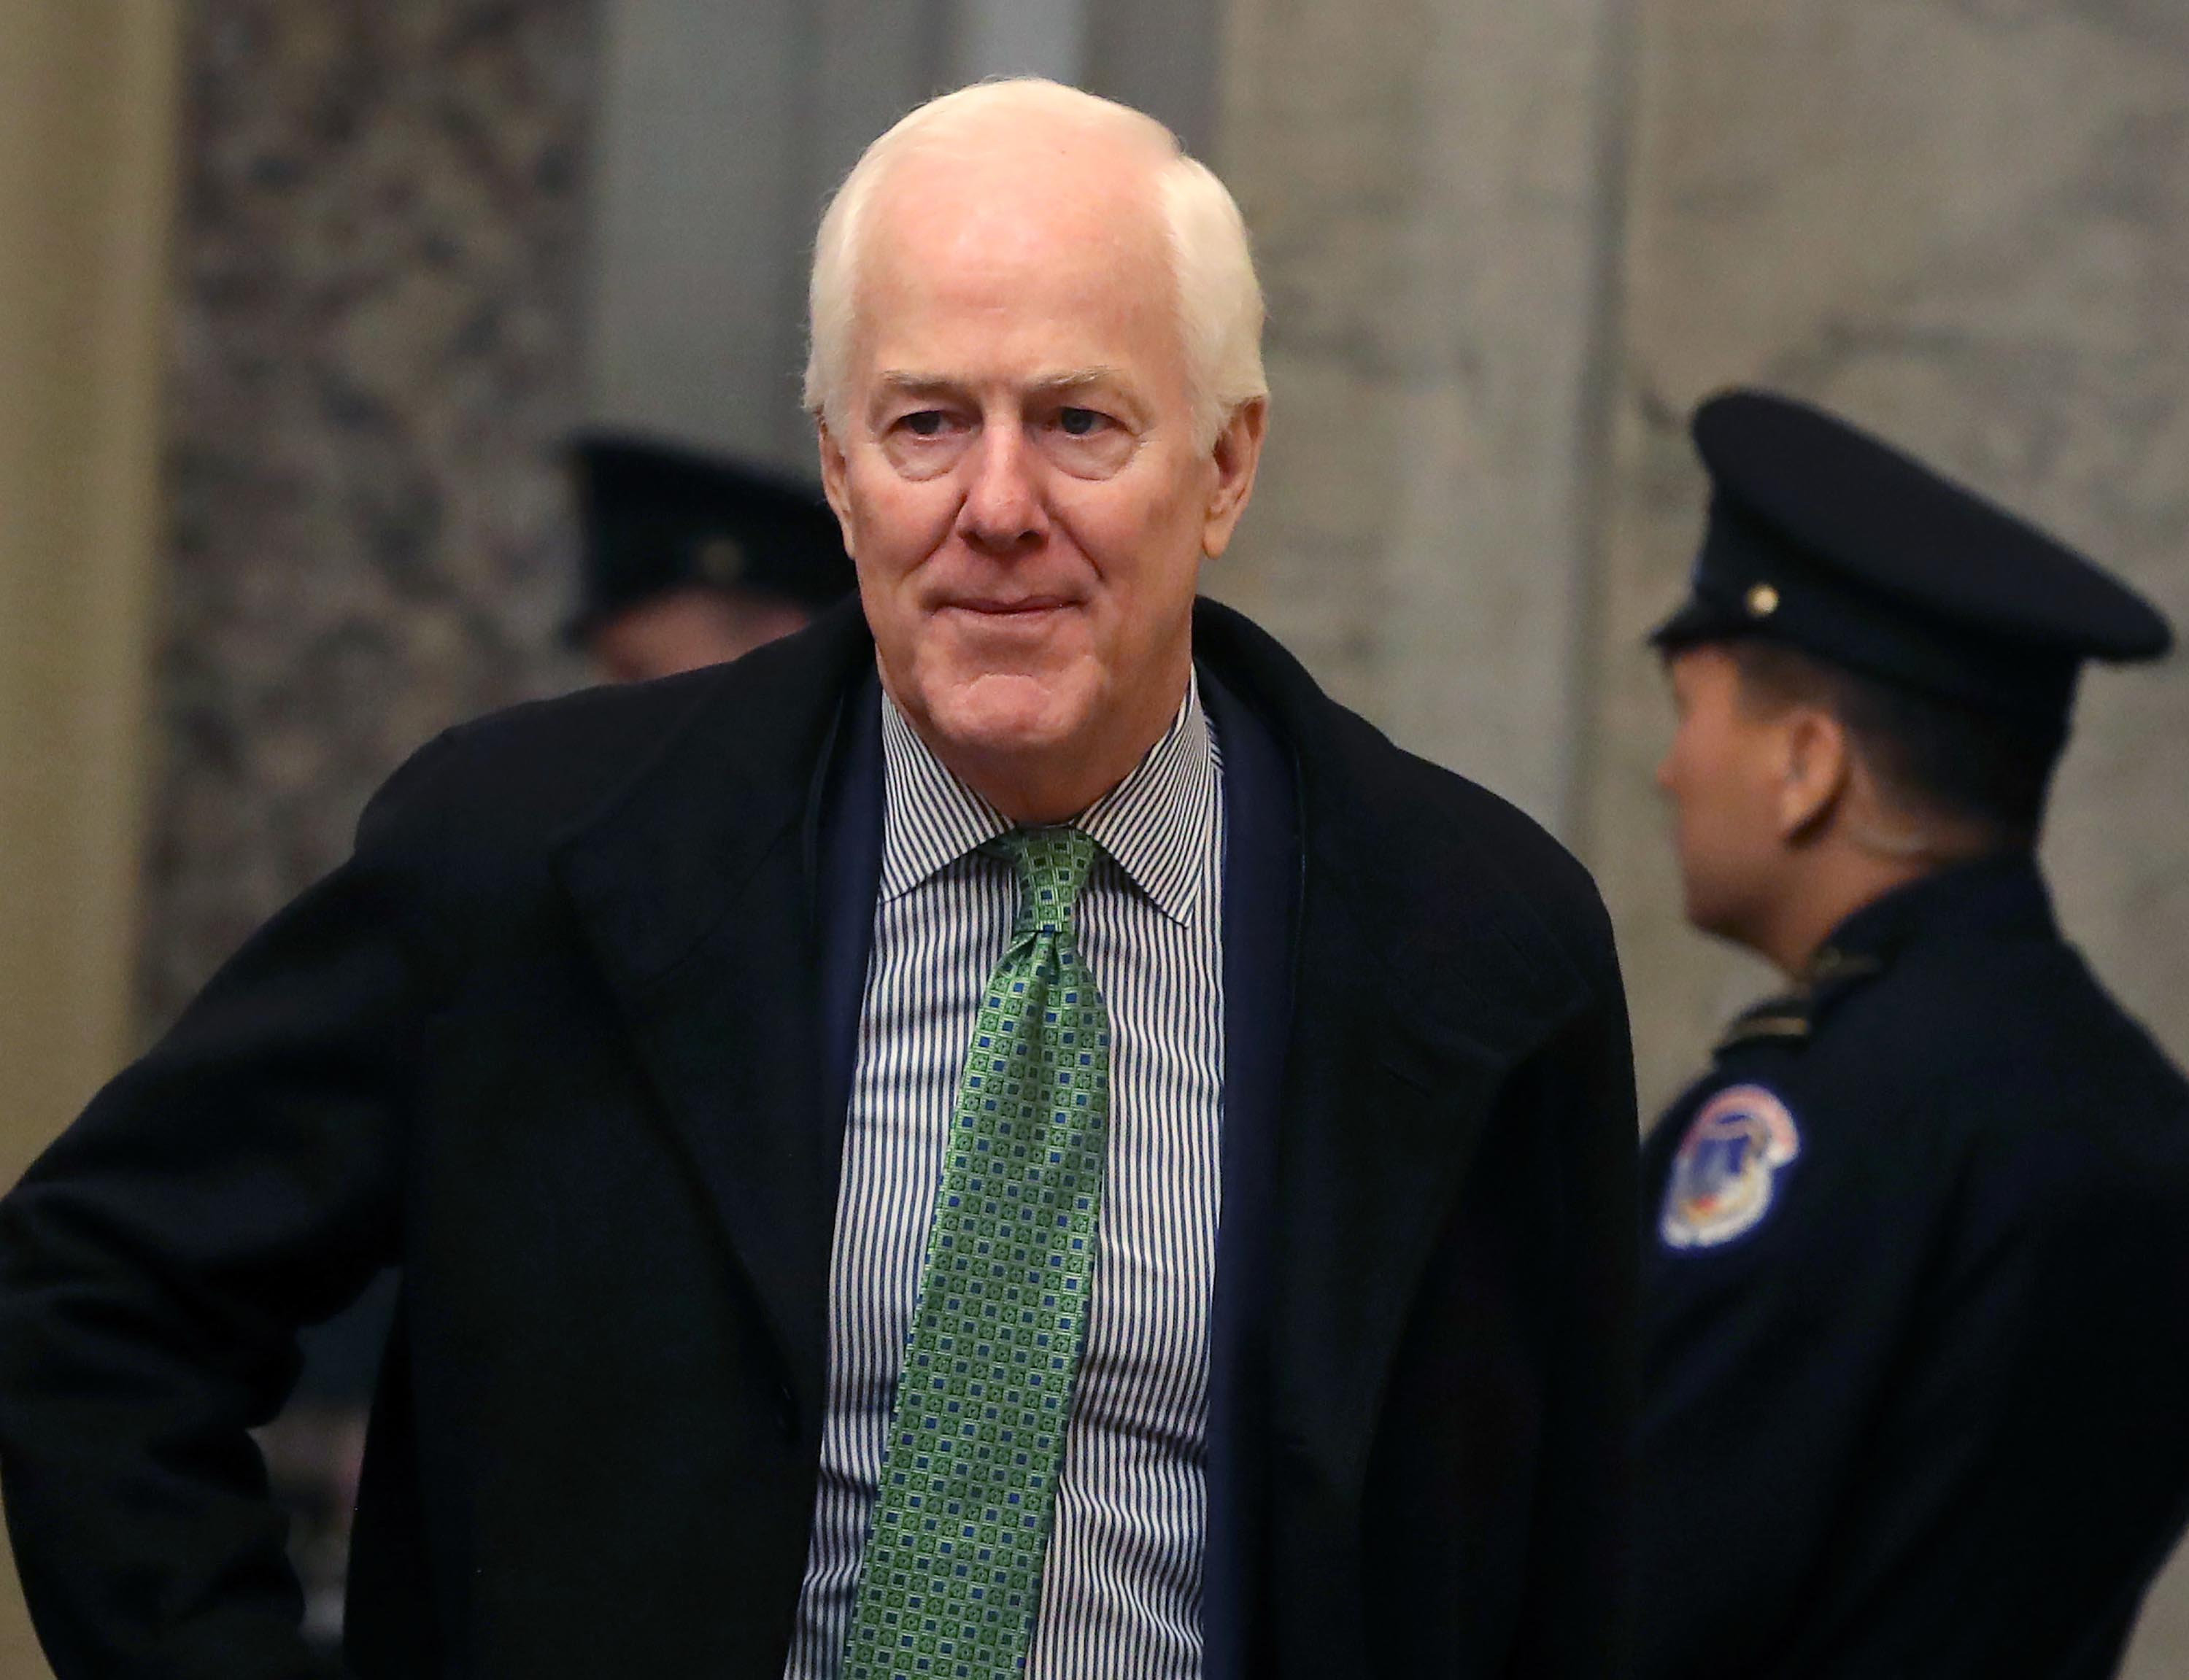 Sen. John Cornyn arrives at the US Capitol as the Senate impeachment trial of President Donald Trump continues January 23.